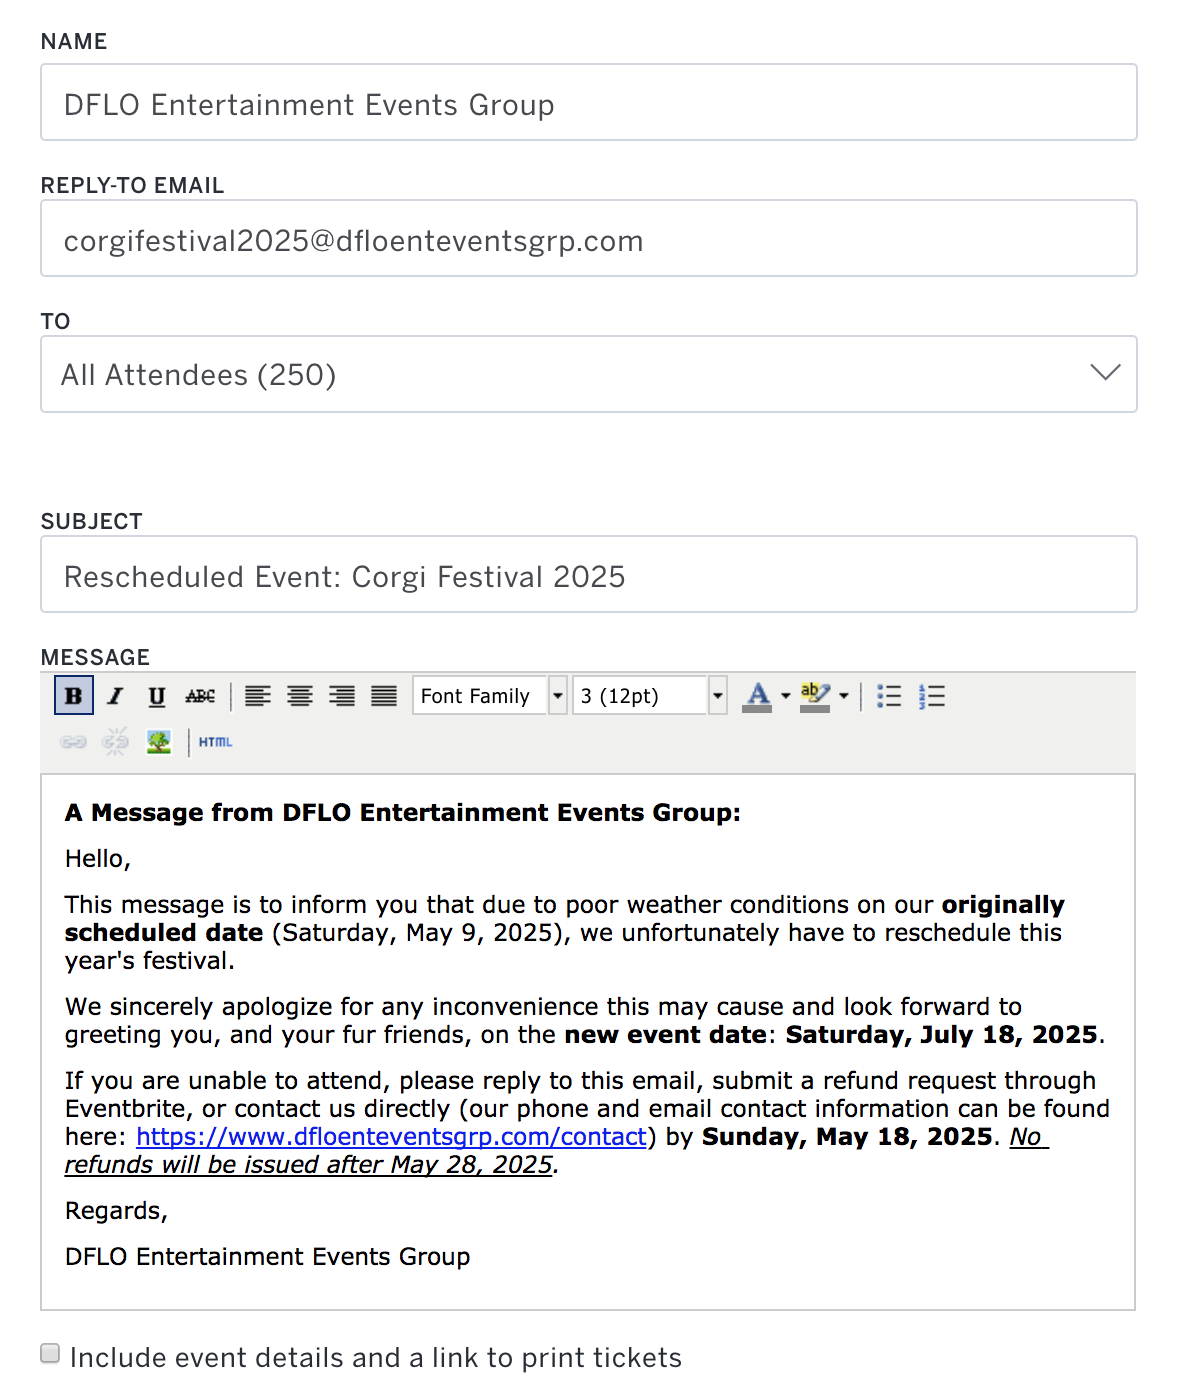 reschedule meeting email template - how to postpone and reschedule an event eventbrite help